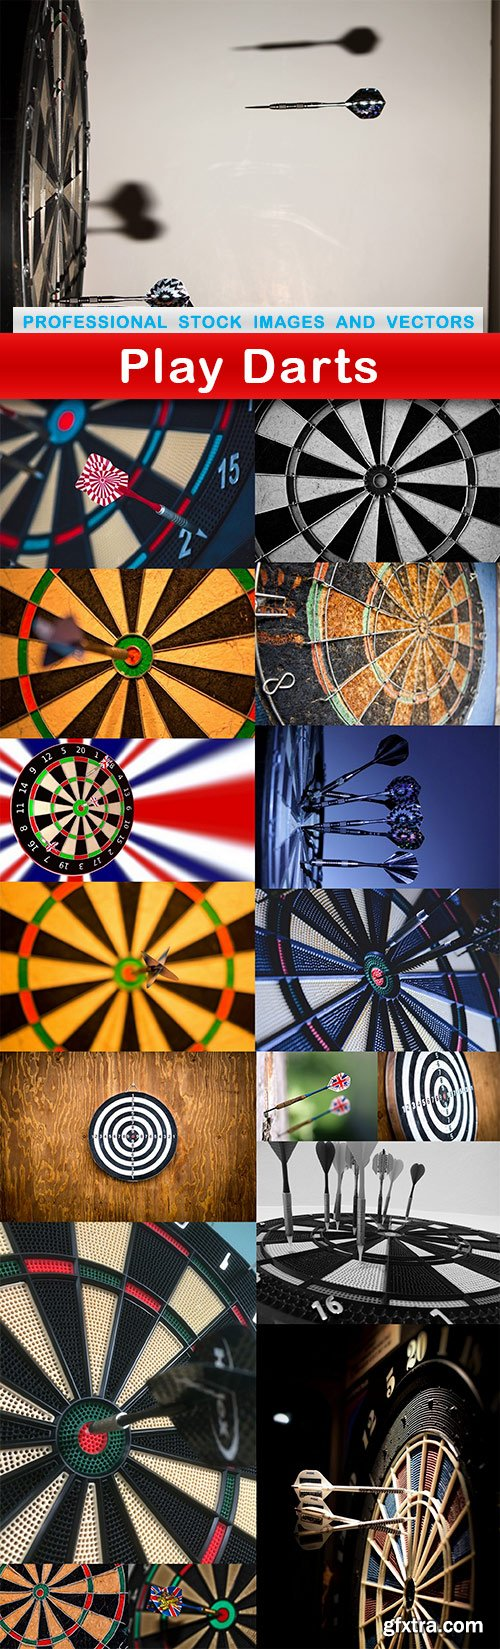 Play Darts - 17 UHQ JPEG